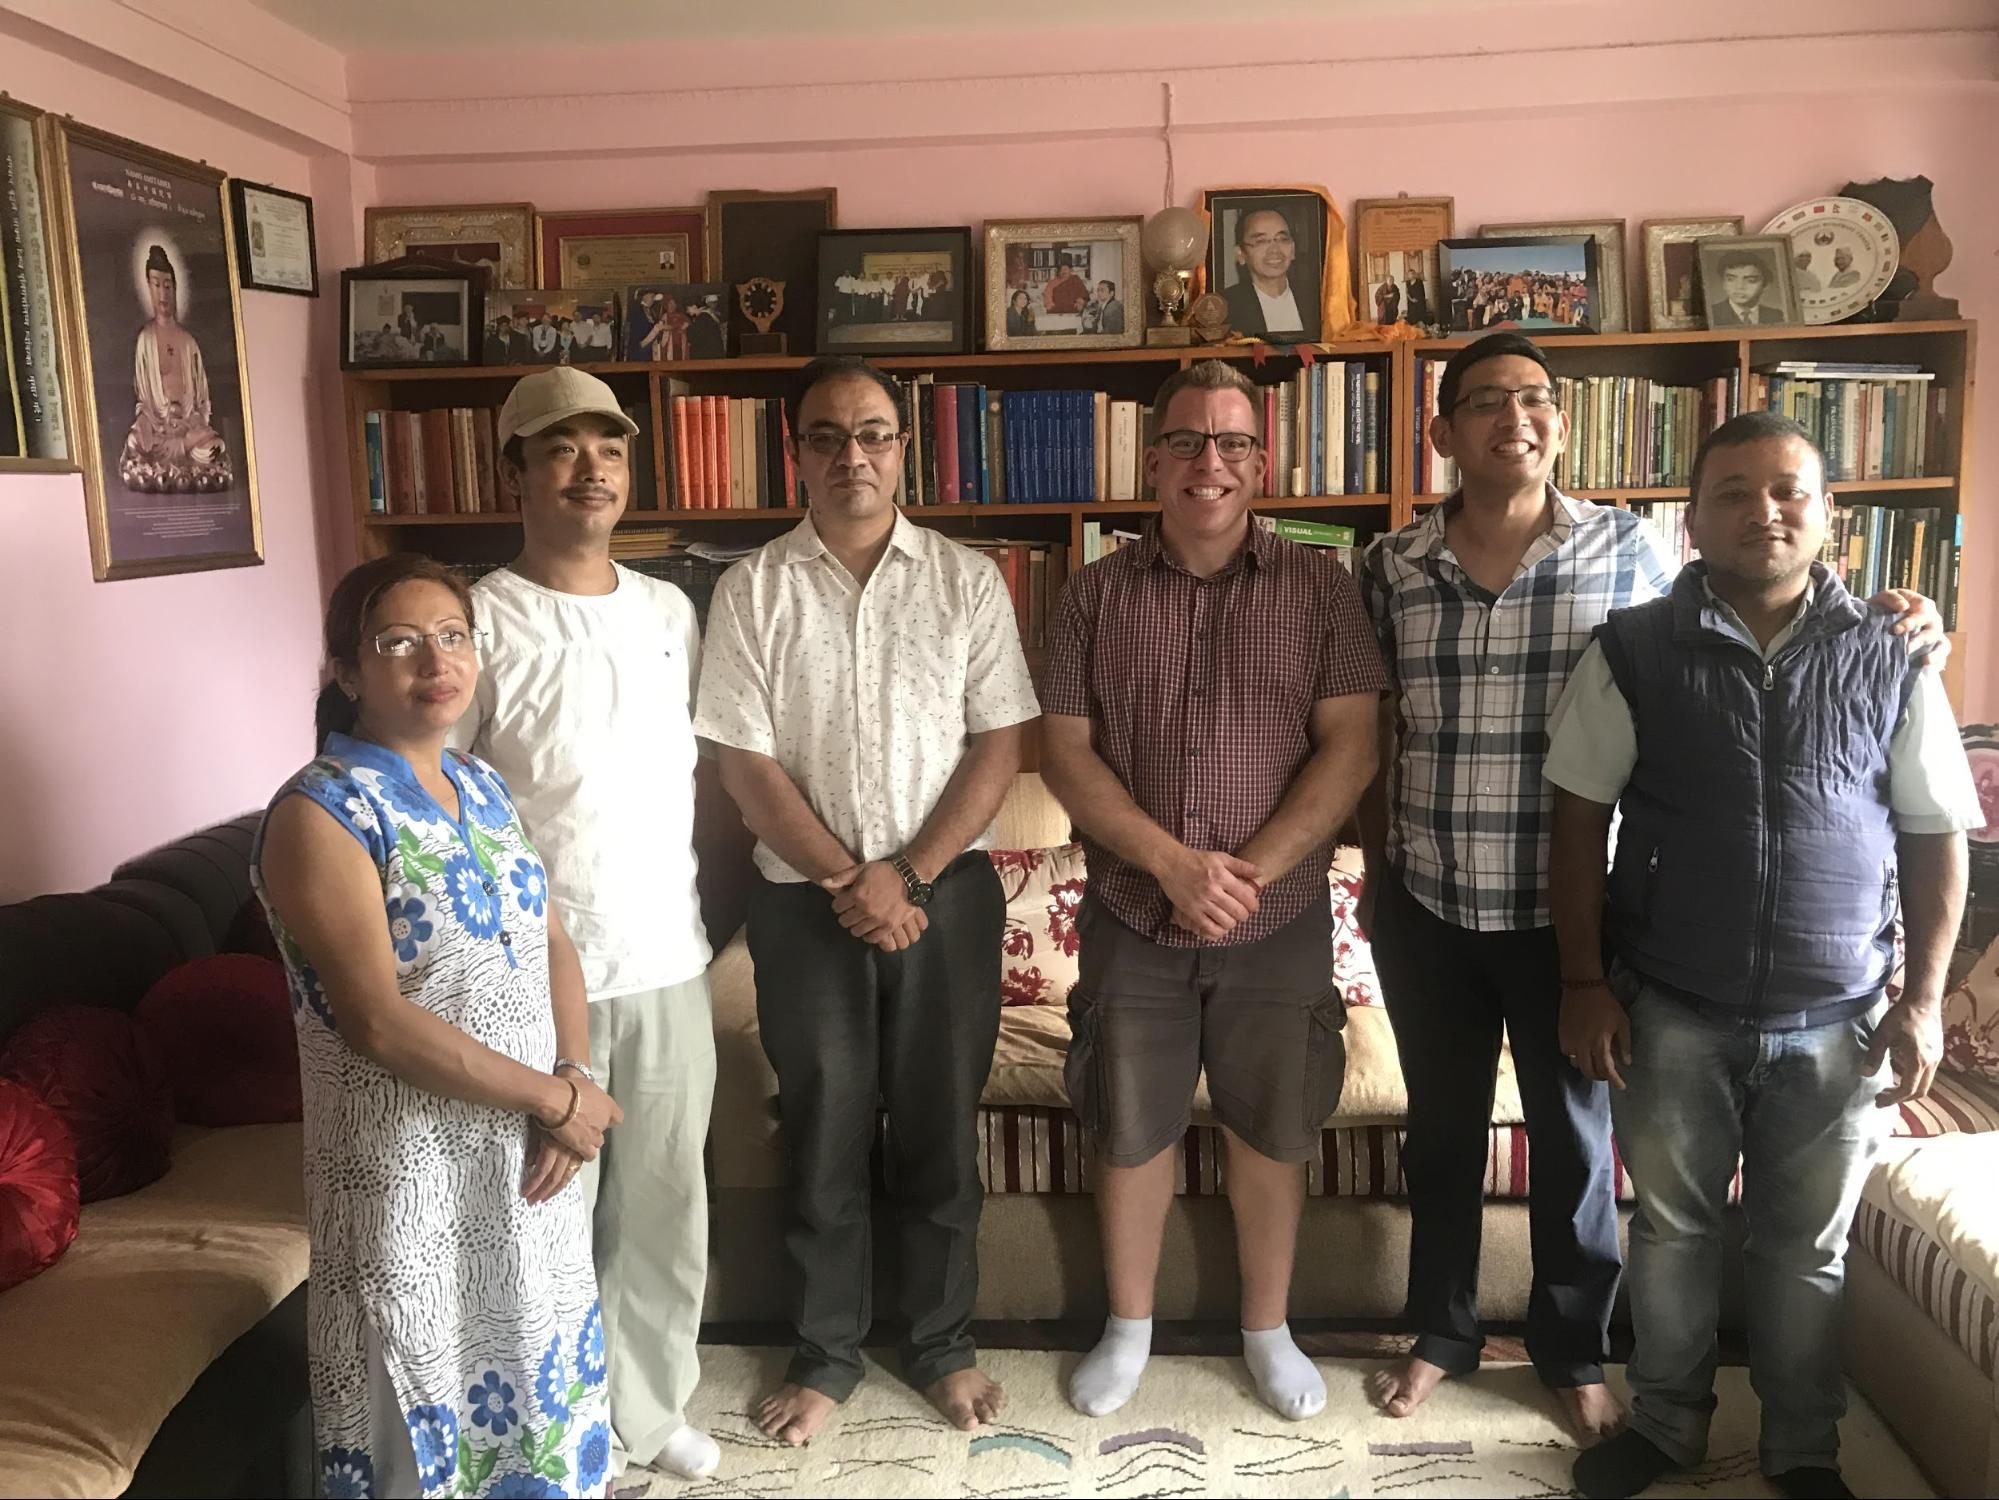 From left to right: Rashmi Shakya, Nabin Bajracharya (Scanning Technician), Milan Shakya (NIBS Managing Director), Travis DeTour, Miroj Shakya (Director of NIBS), Tejendra Shakya